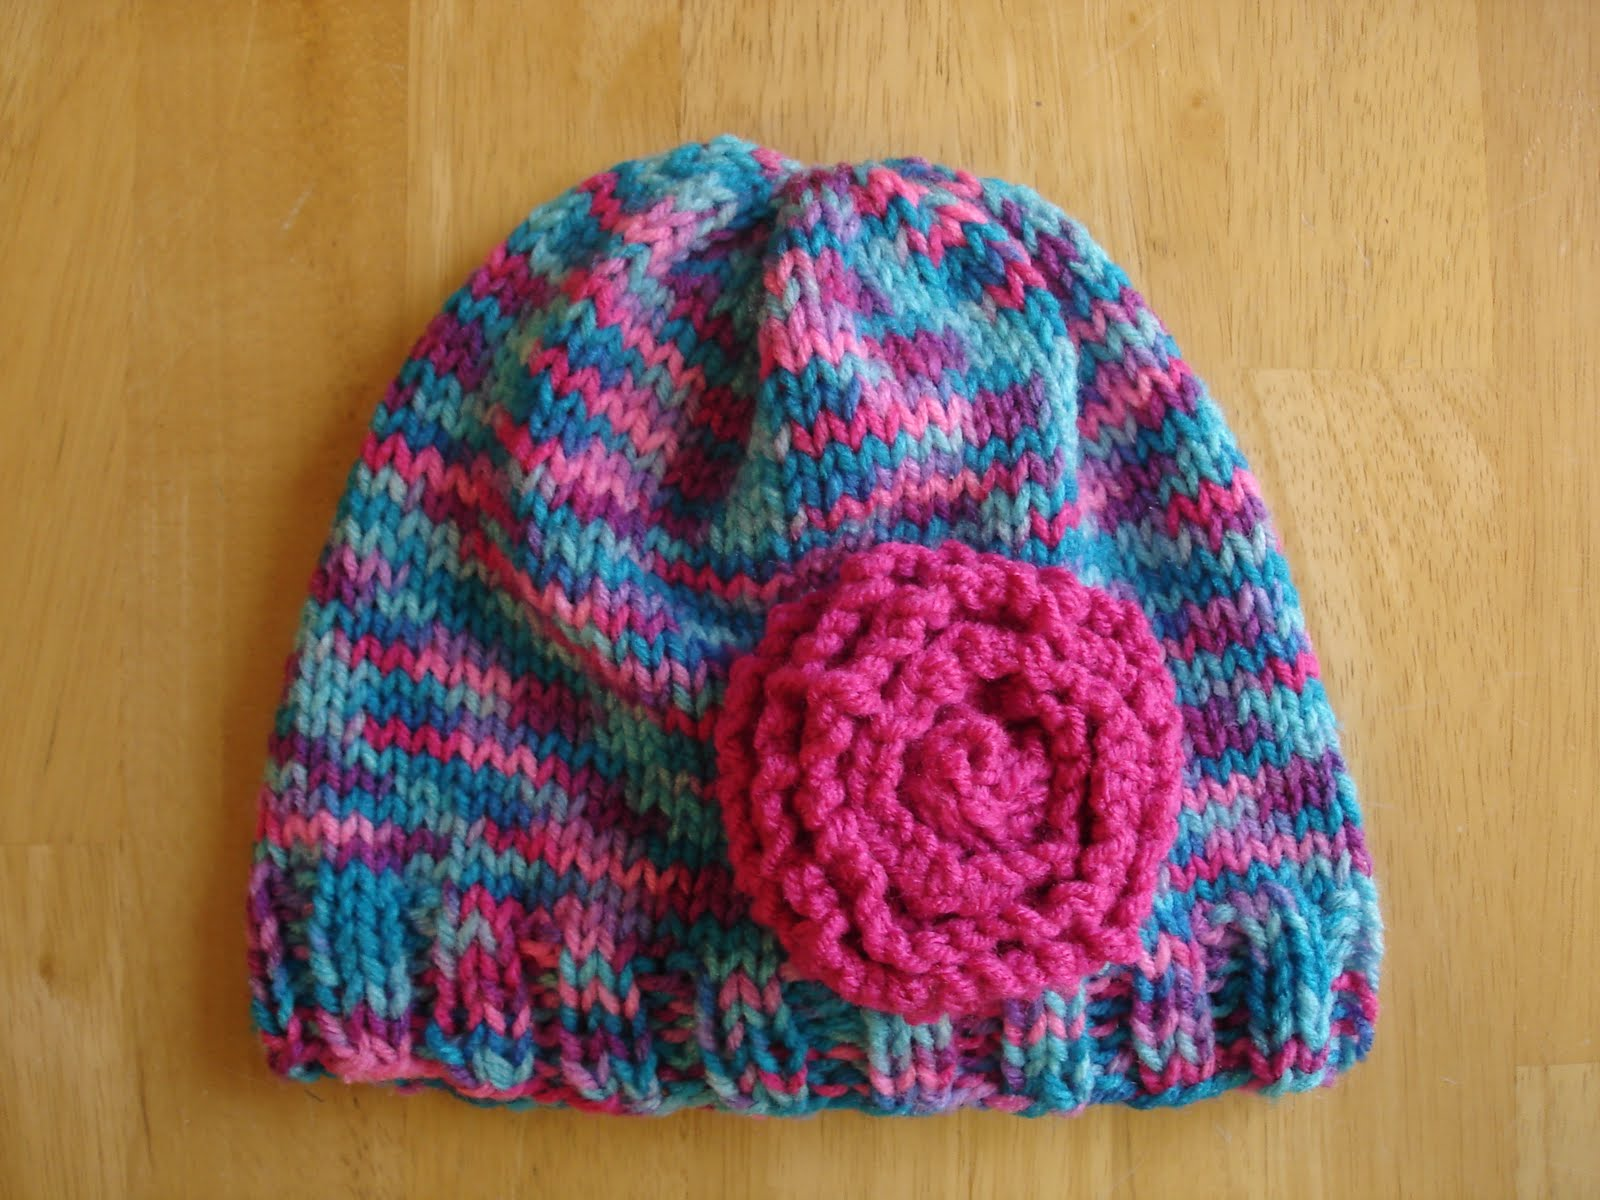 Free Knitting Pattern Childs Hat : Fiber Flux: Free Knitting Pattern...Baby Doll Hats!